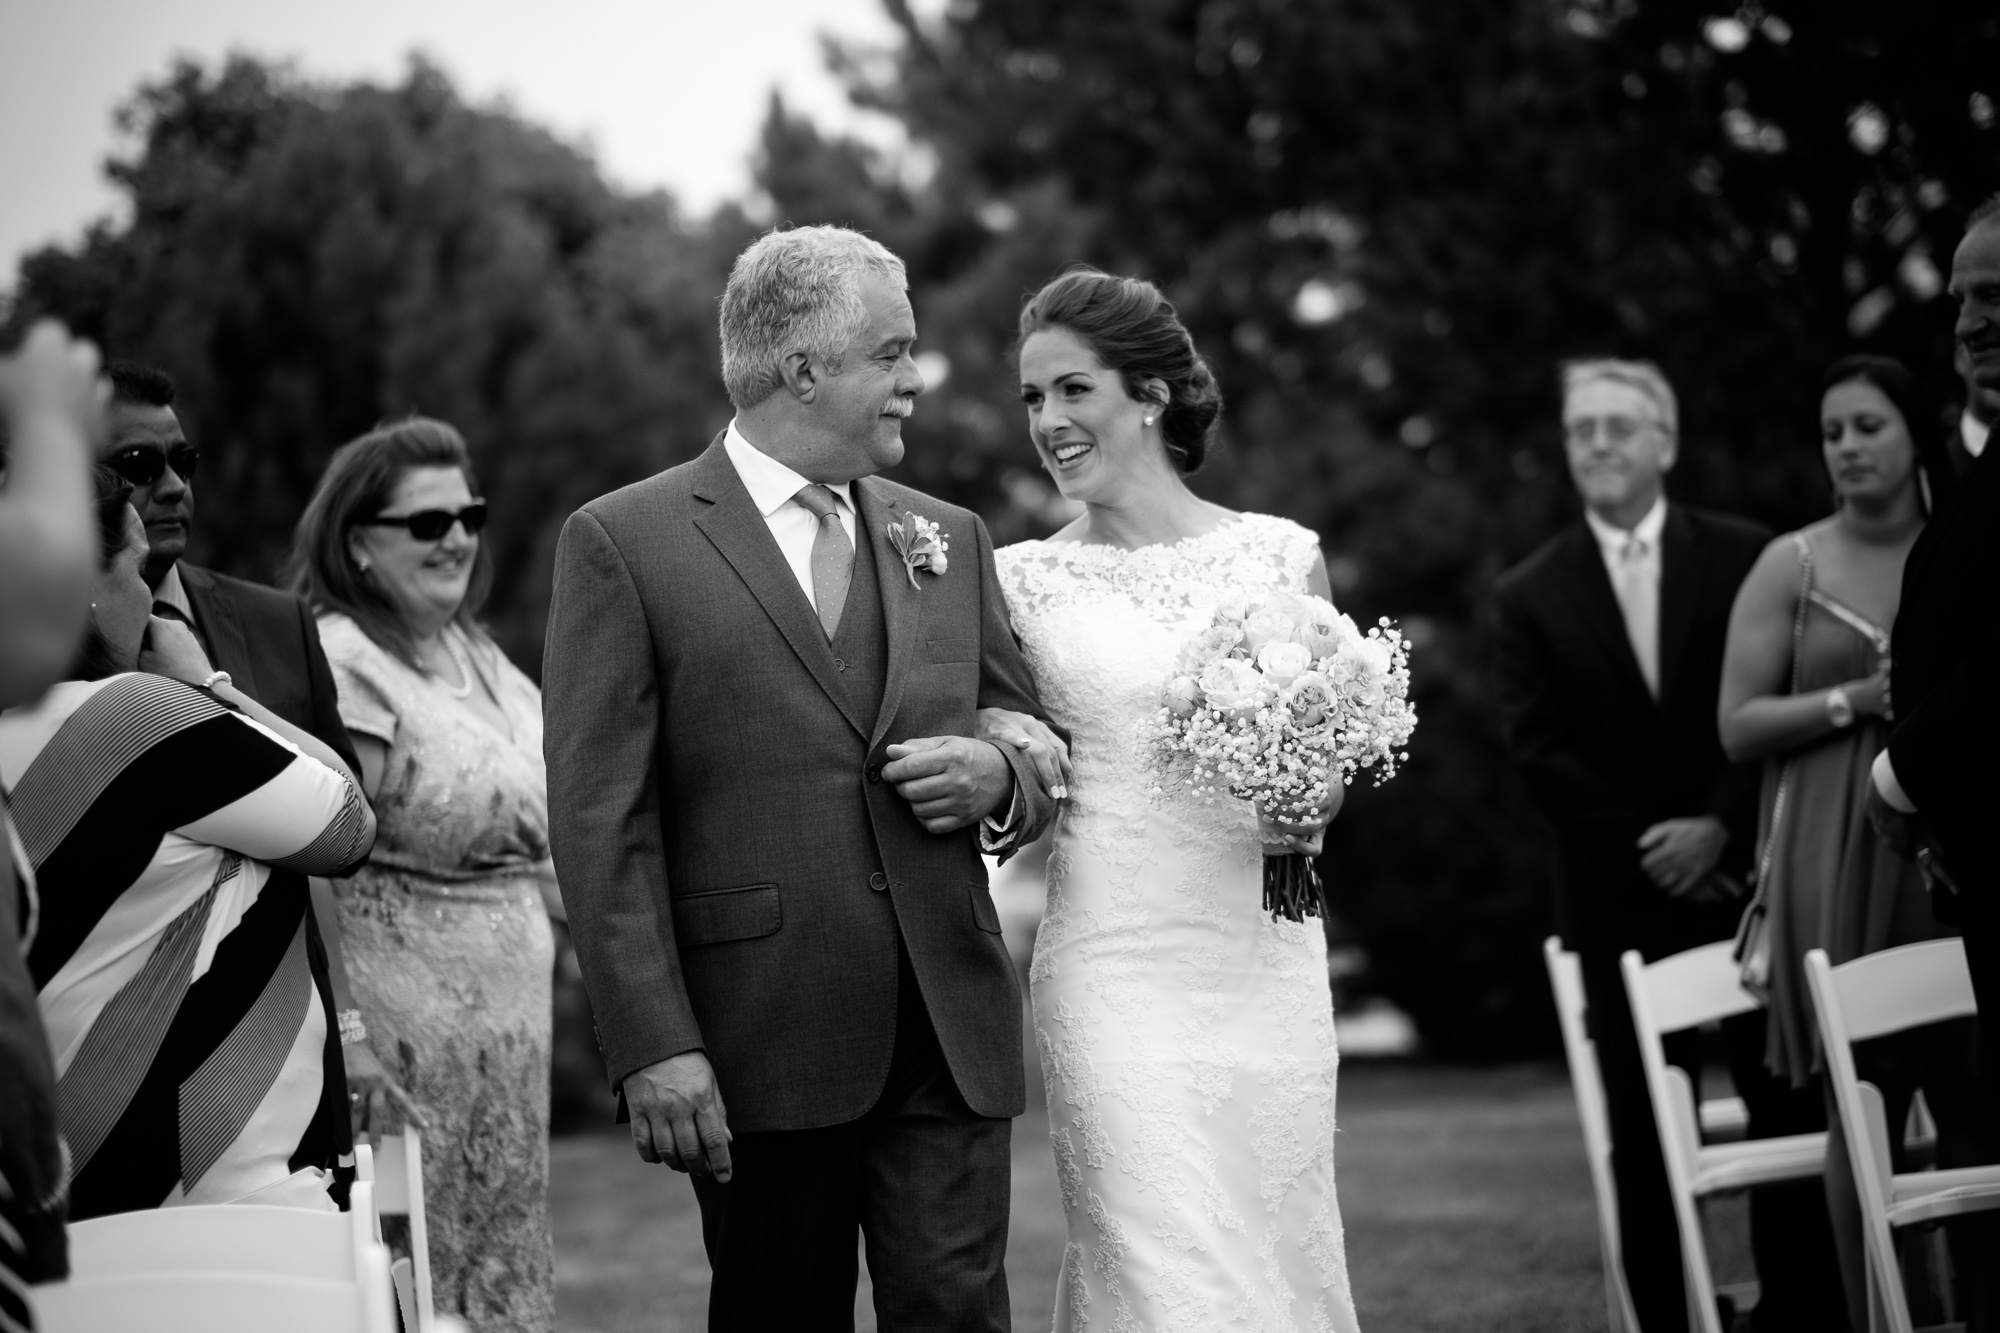 Rebecca and her father share a moment as they walk down the aisle during their outdoor wedding ceremony at the Hessenland Inn.